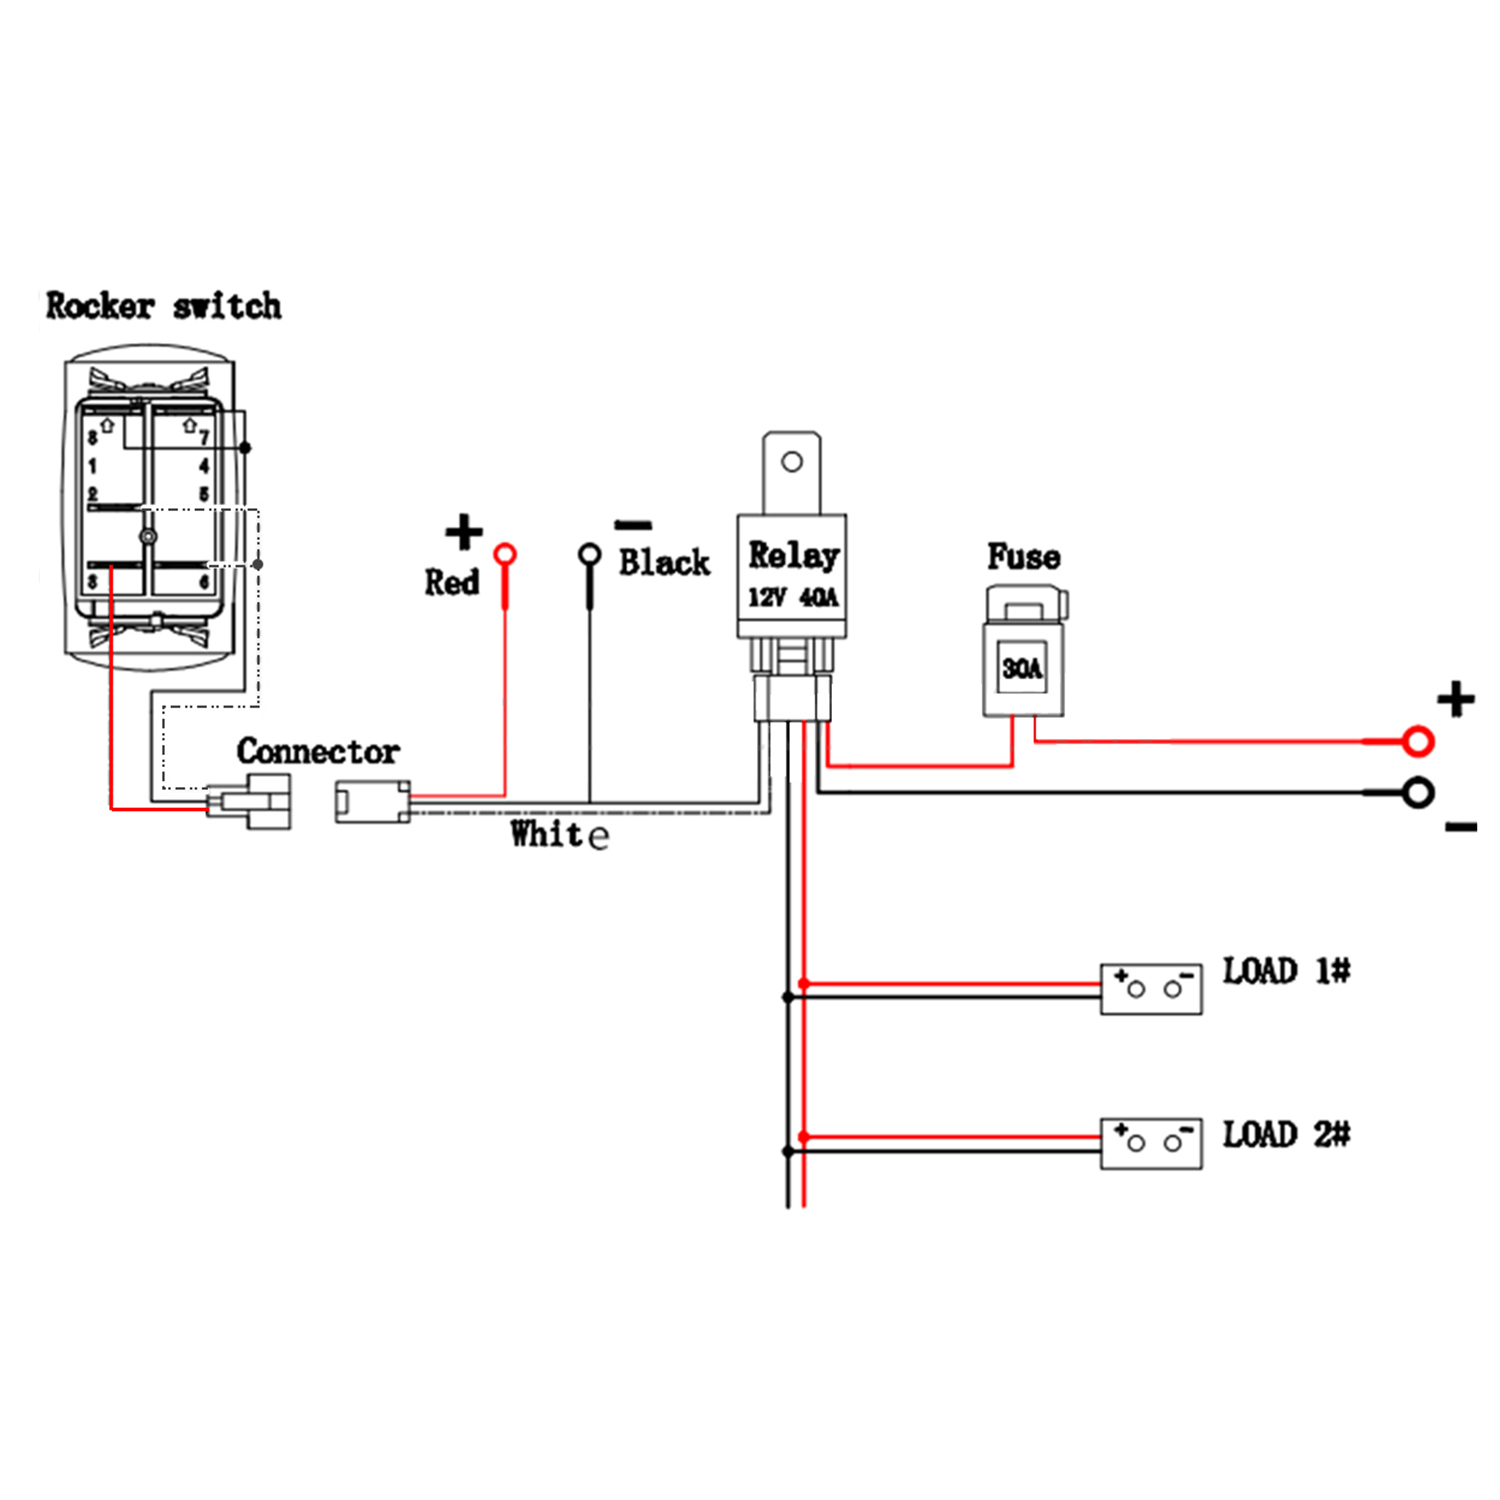 Rocker Switch Wiring Diagram 5 Wire | Manual E-Books - Mictuning Usb Toggle Switch Wiring Diagram